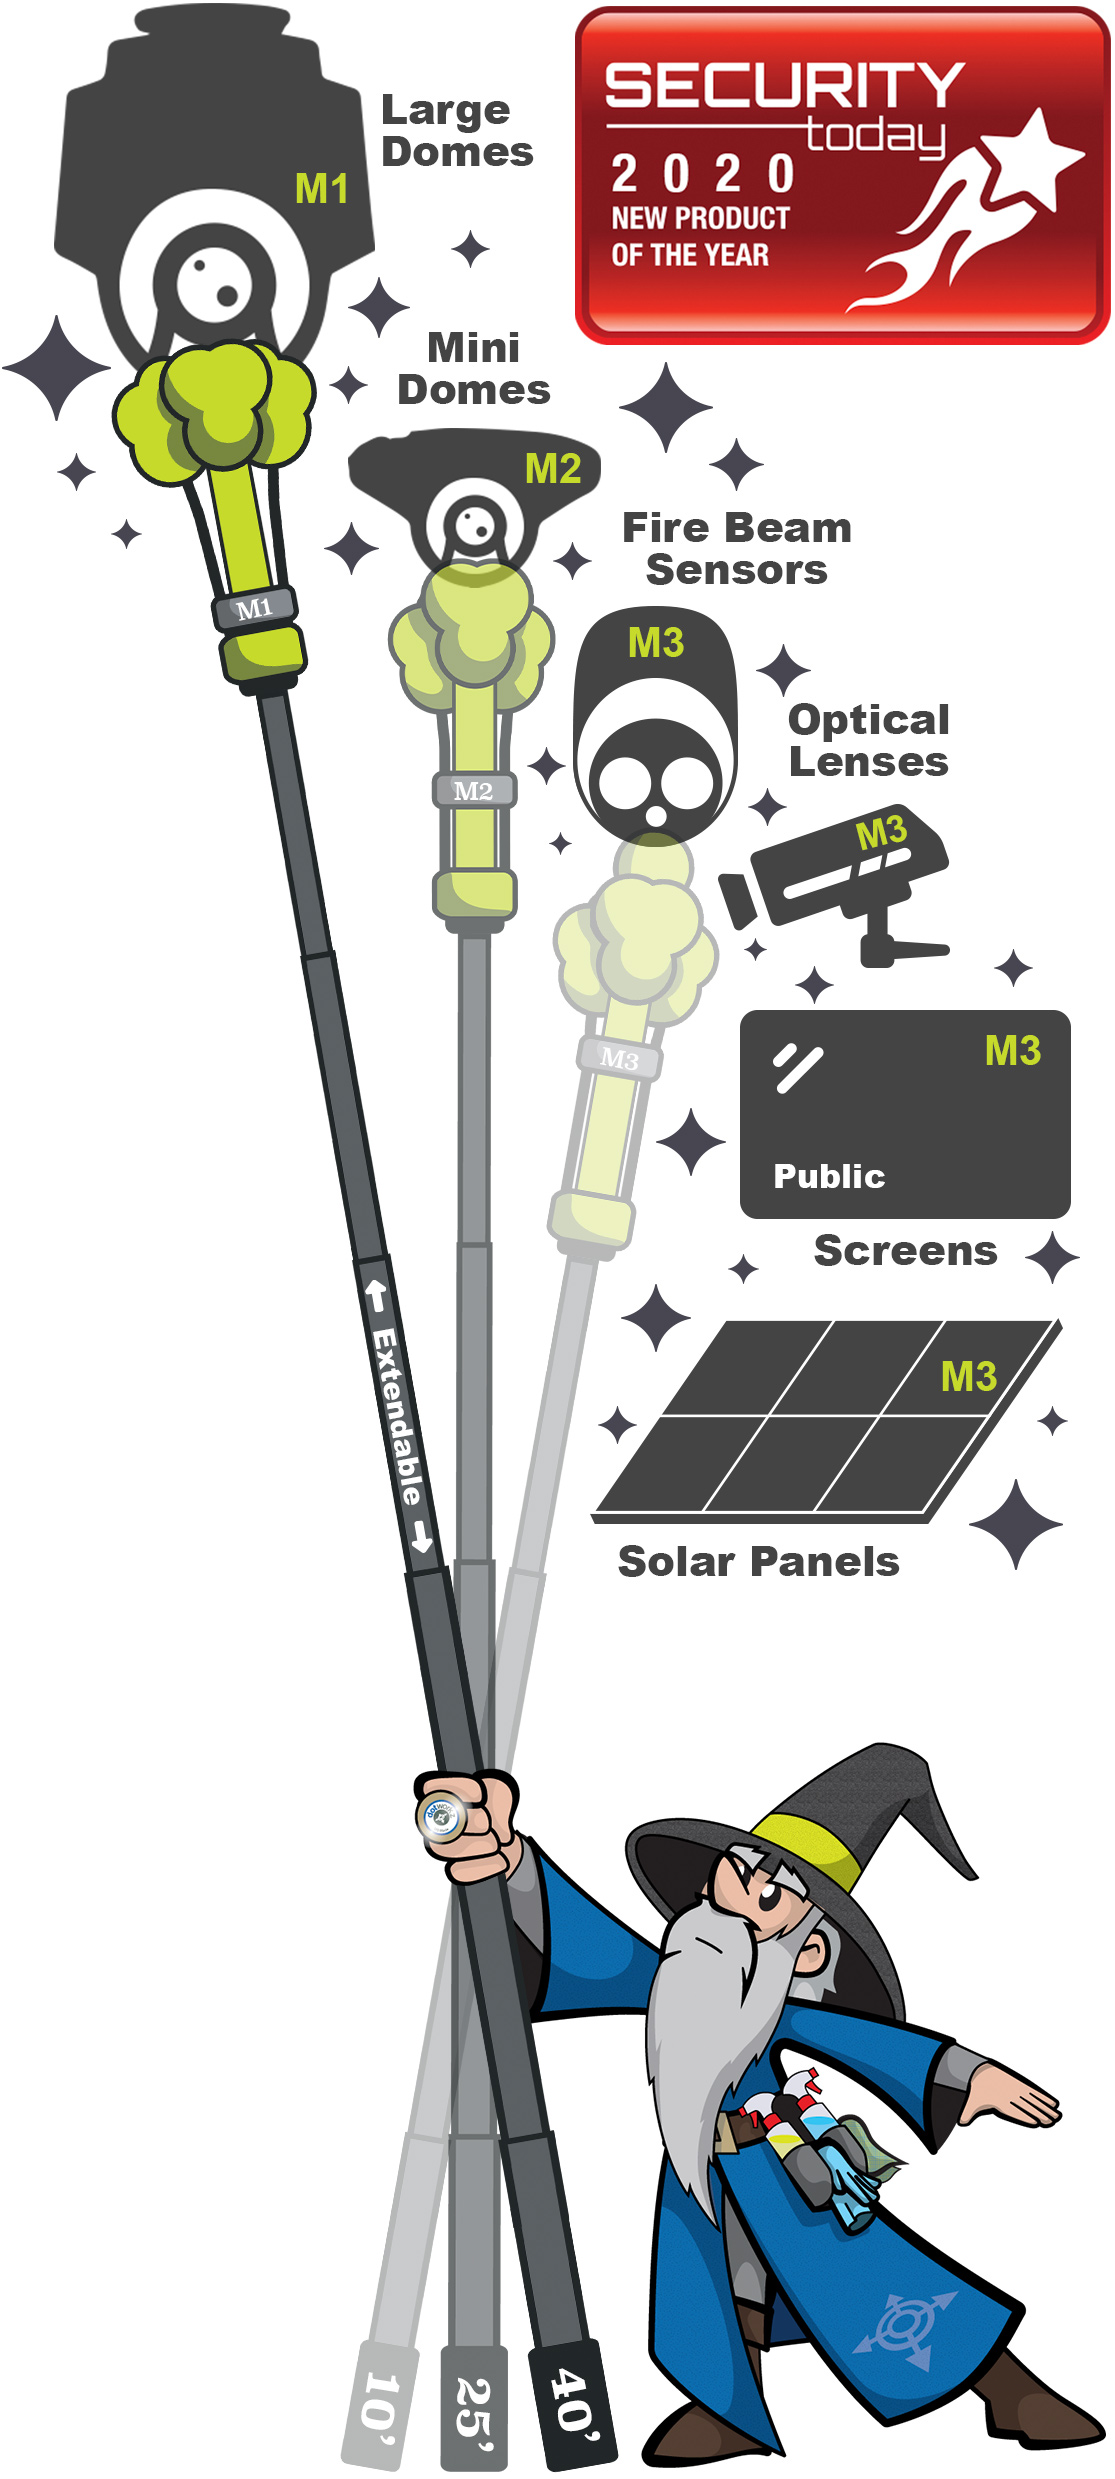 DomeWizard - Ultra high reaching multi surface cleaning tool with NPOY Award New Product of the Year Security Today